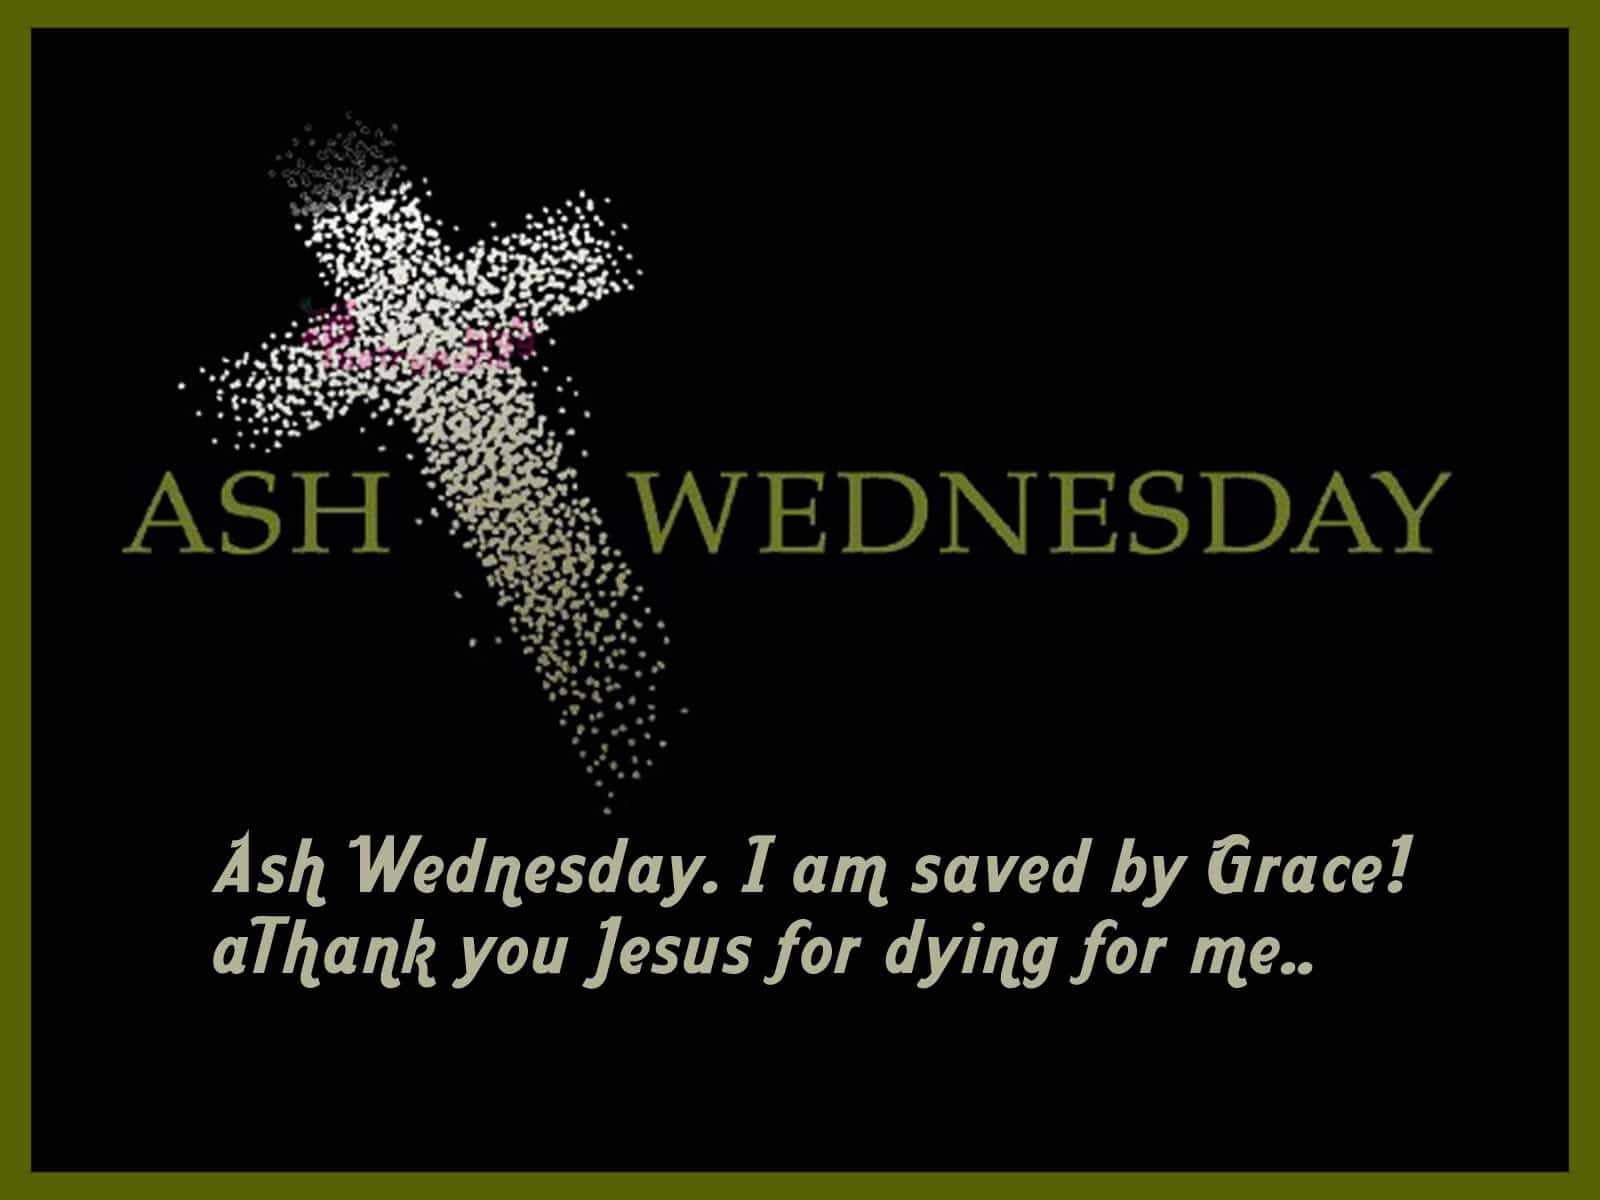 Ash Wednesday Wishes Pictures